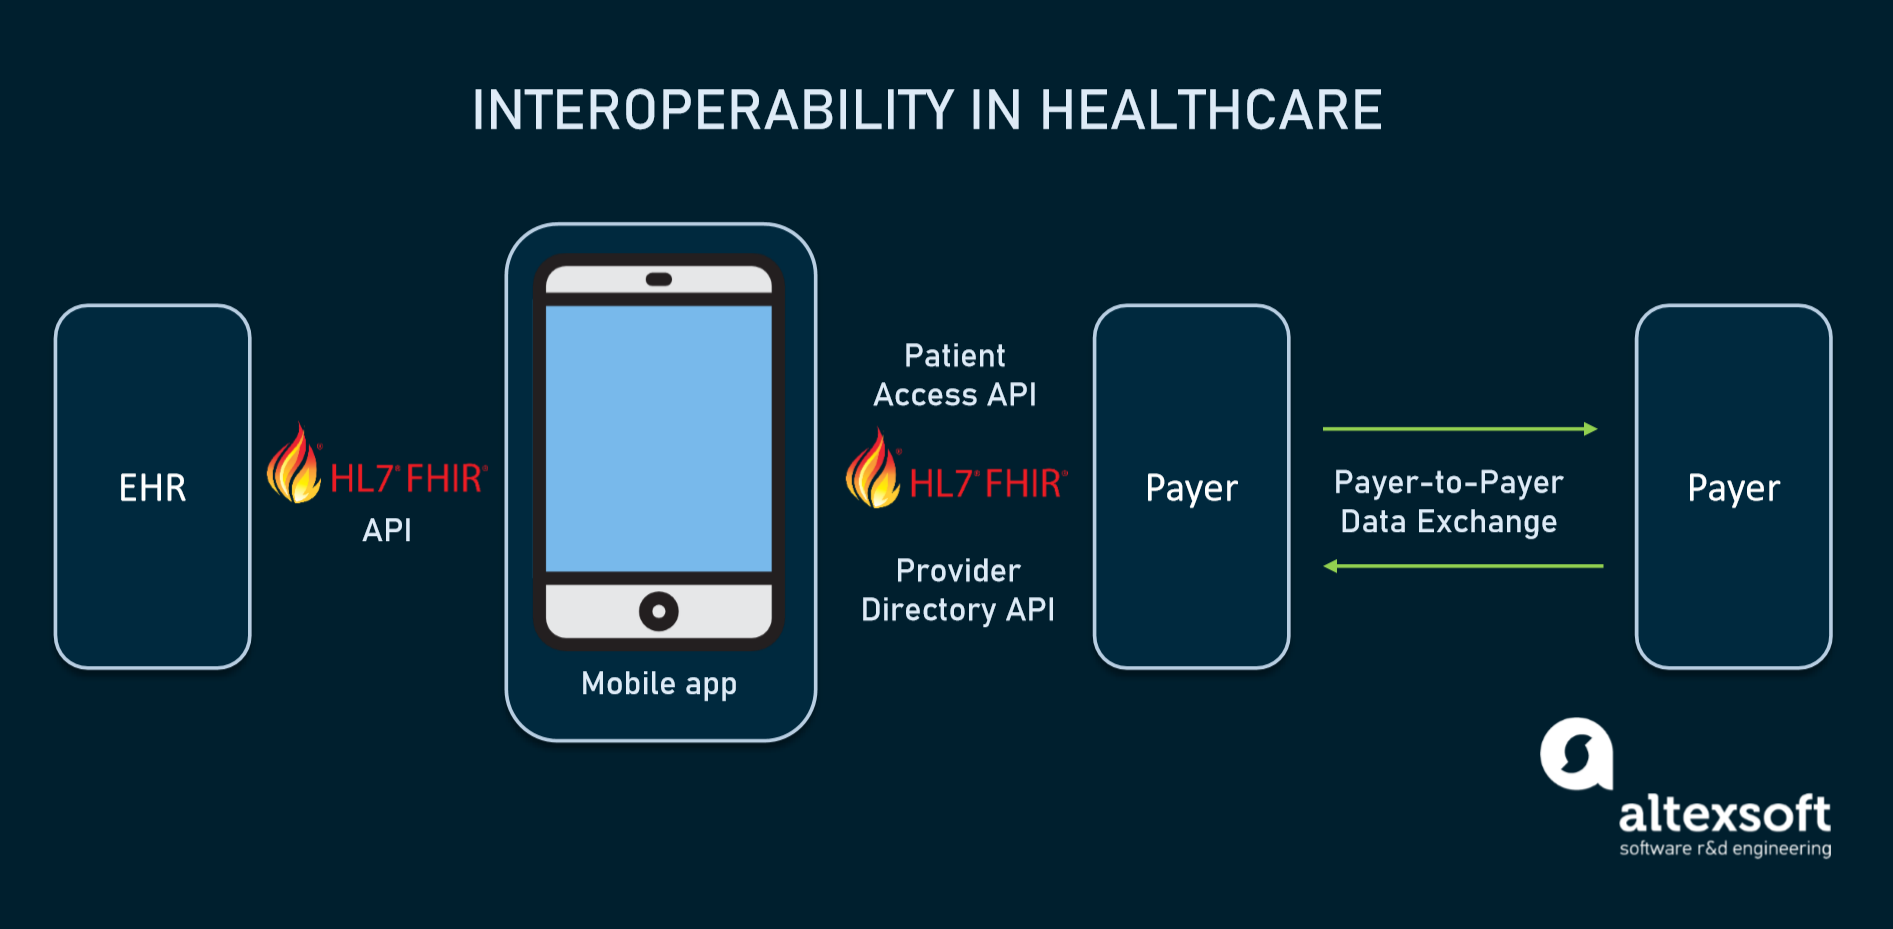 Interoperability in healthcare based on FHIR API